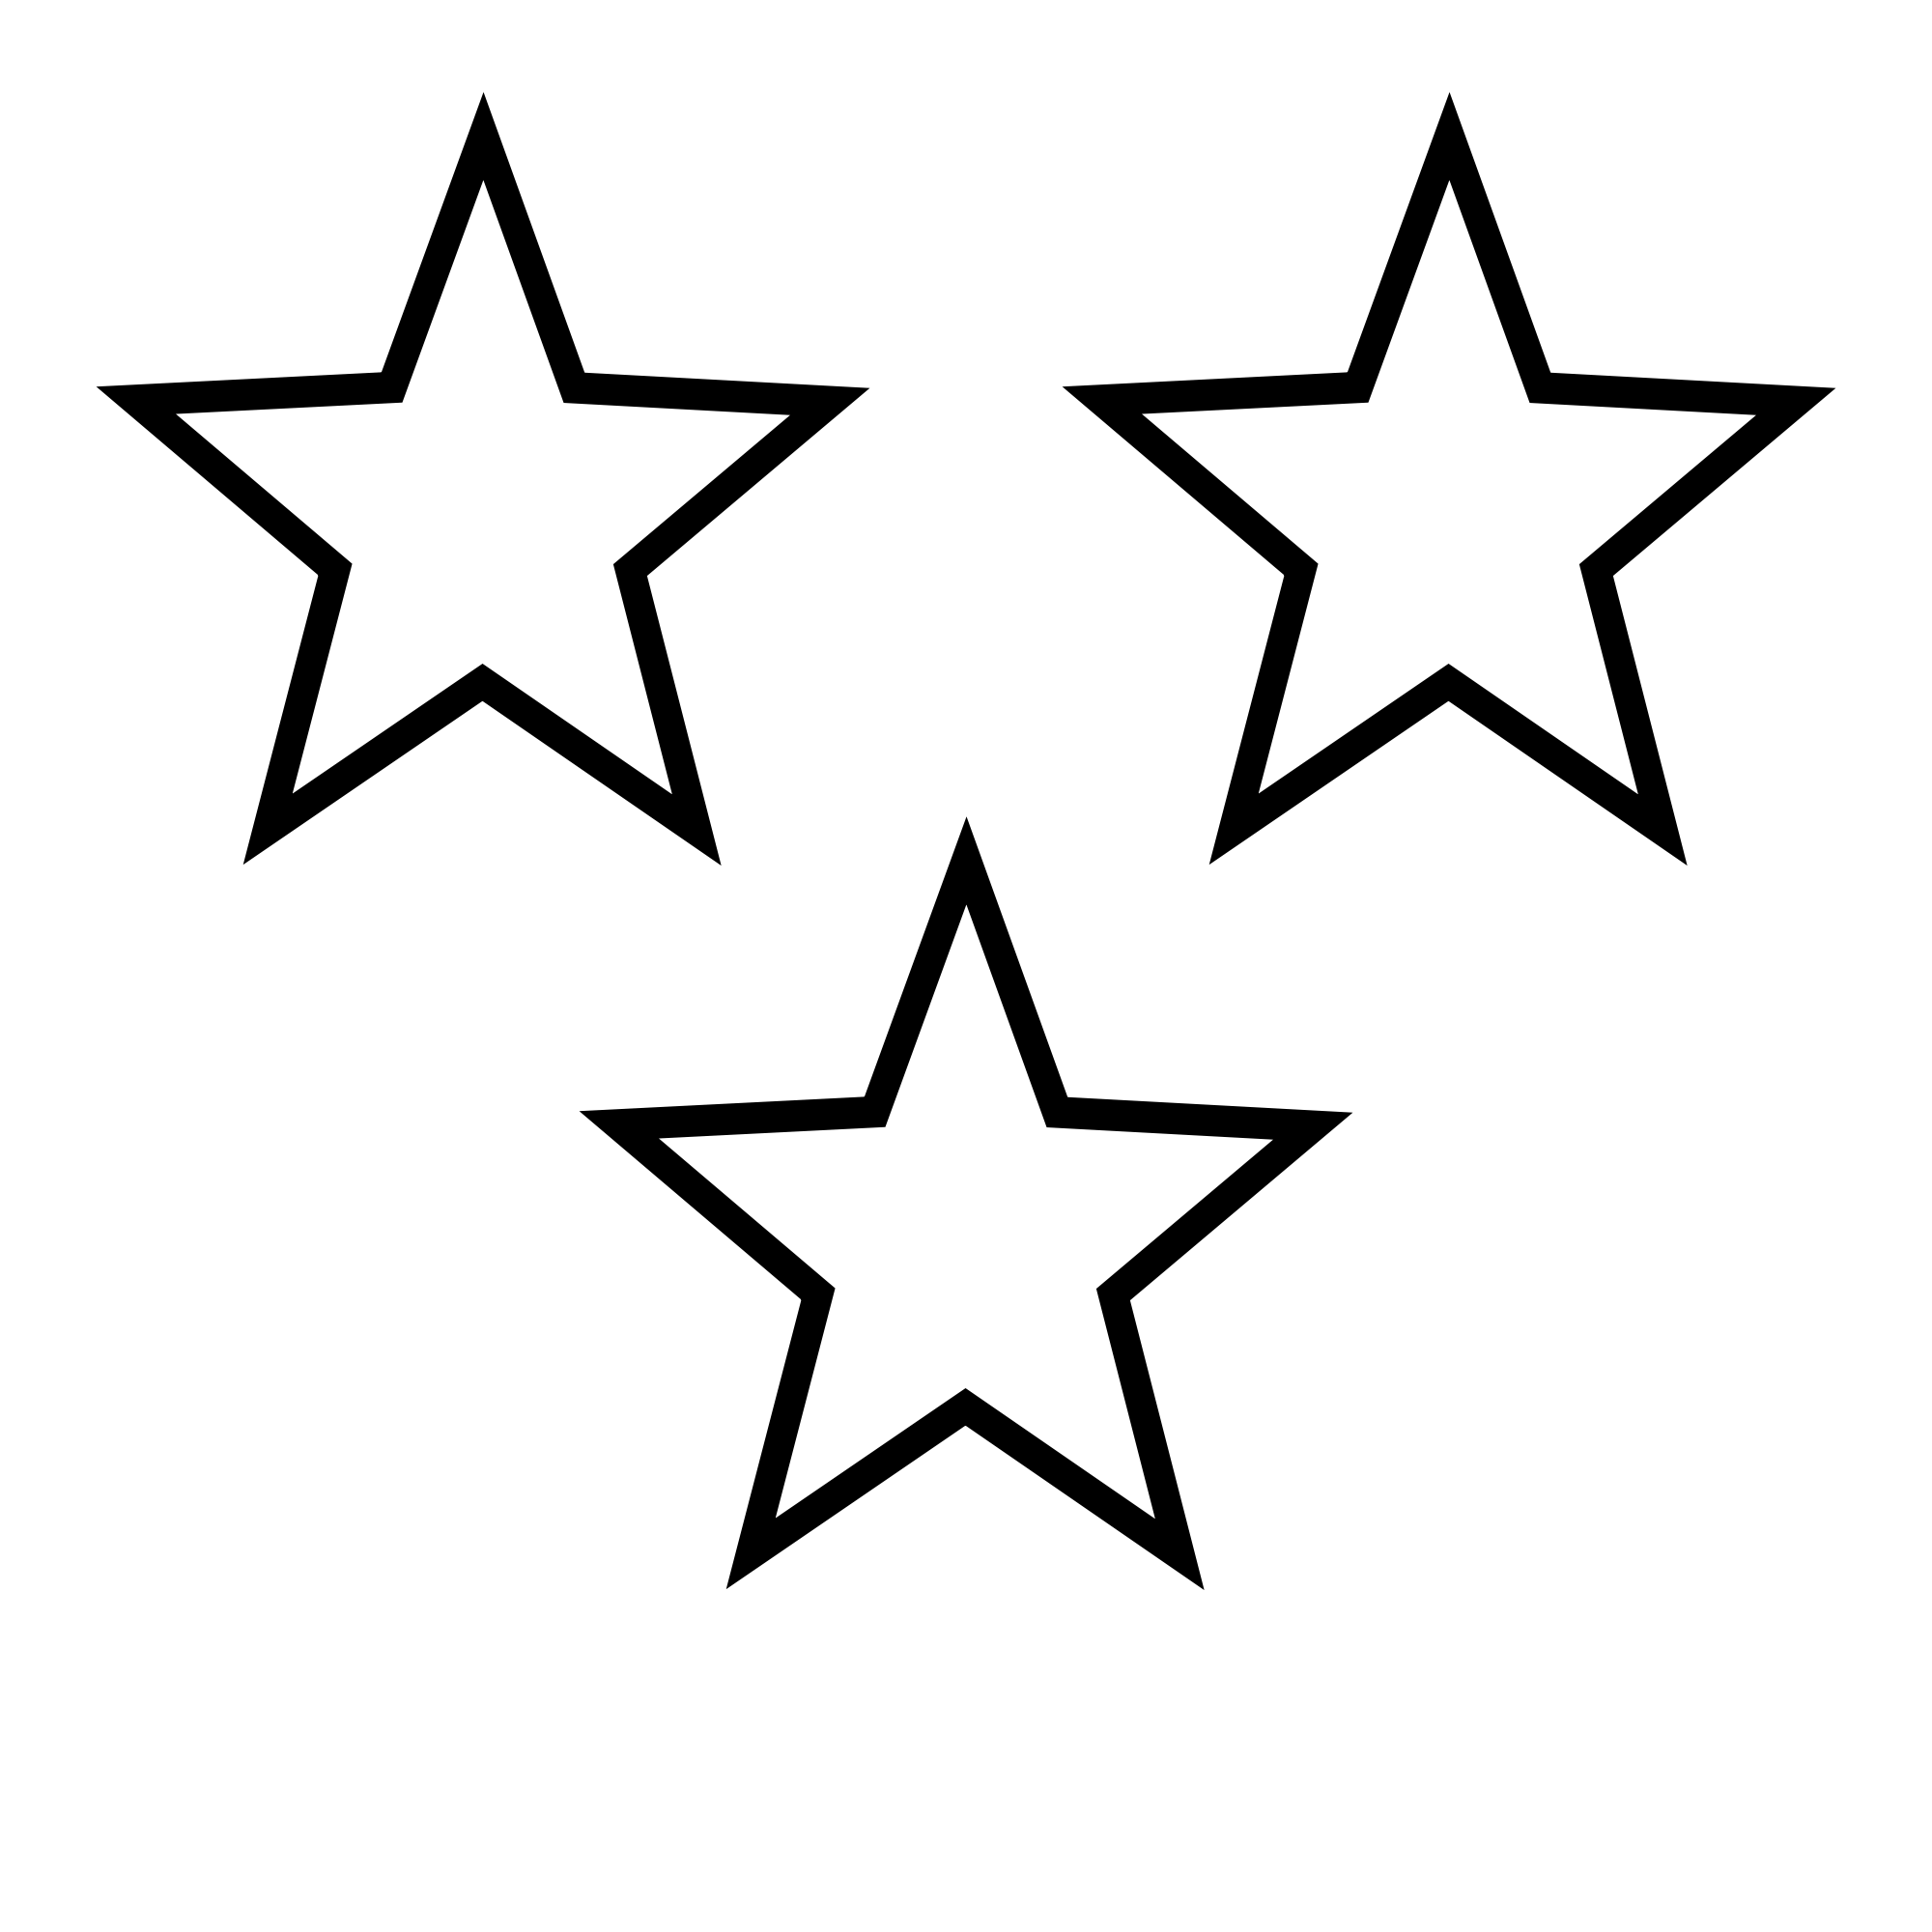 PNG Star Black And White - 60948